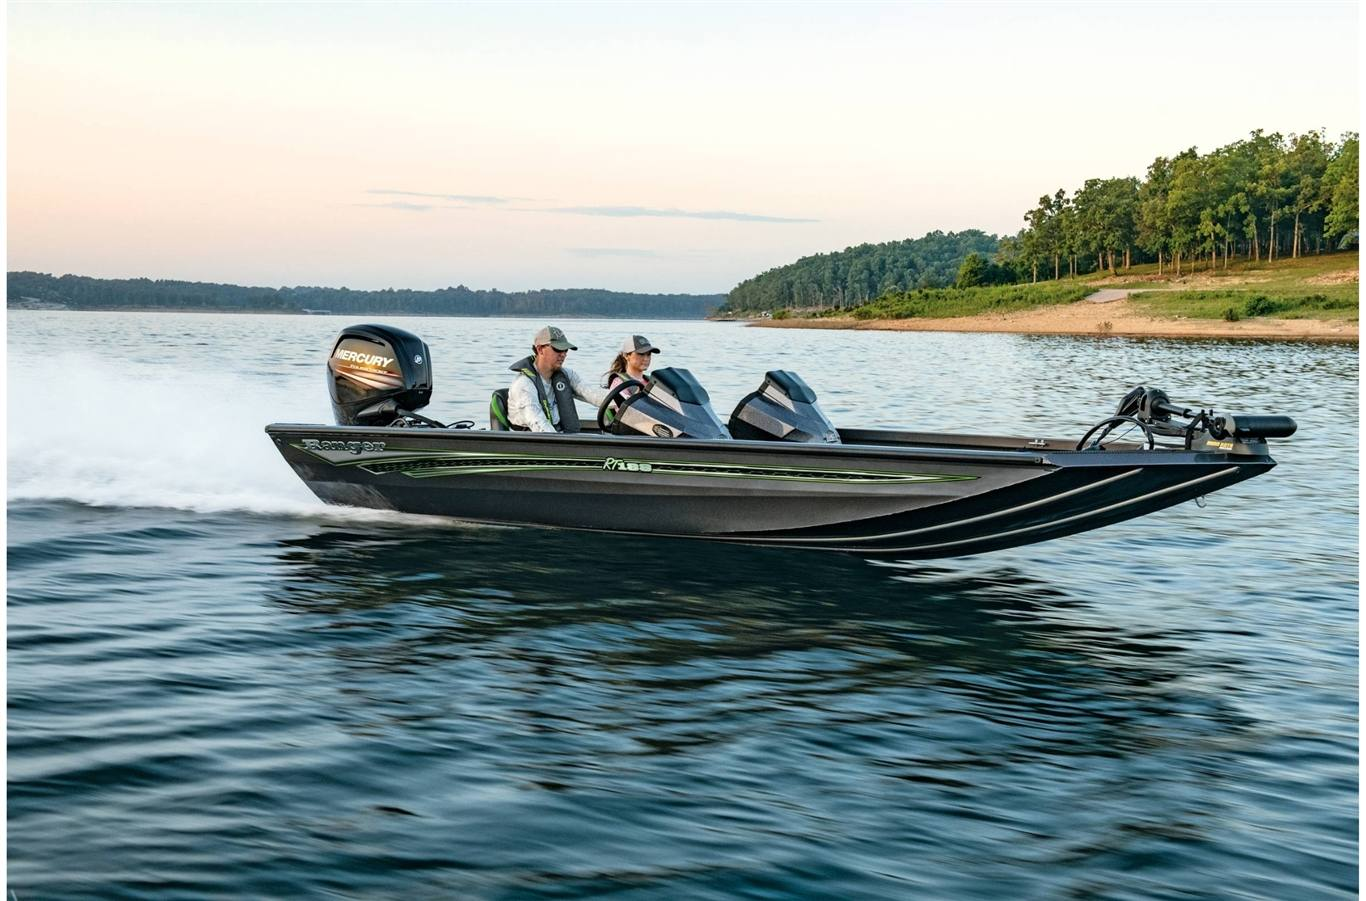 2020 Ranger RT188 for sale in Algonac, MI. Rose Marine ... on